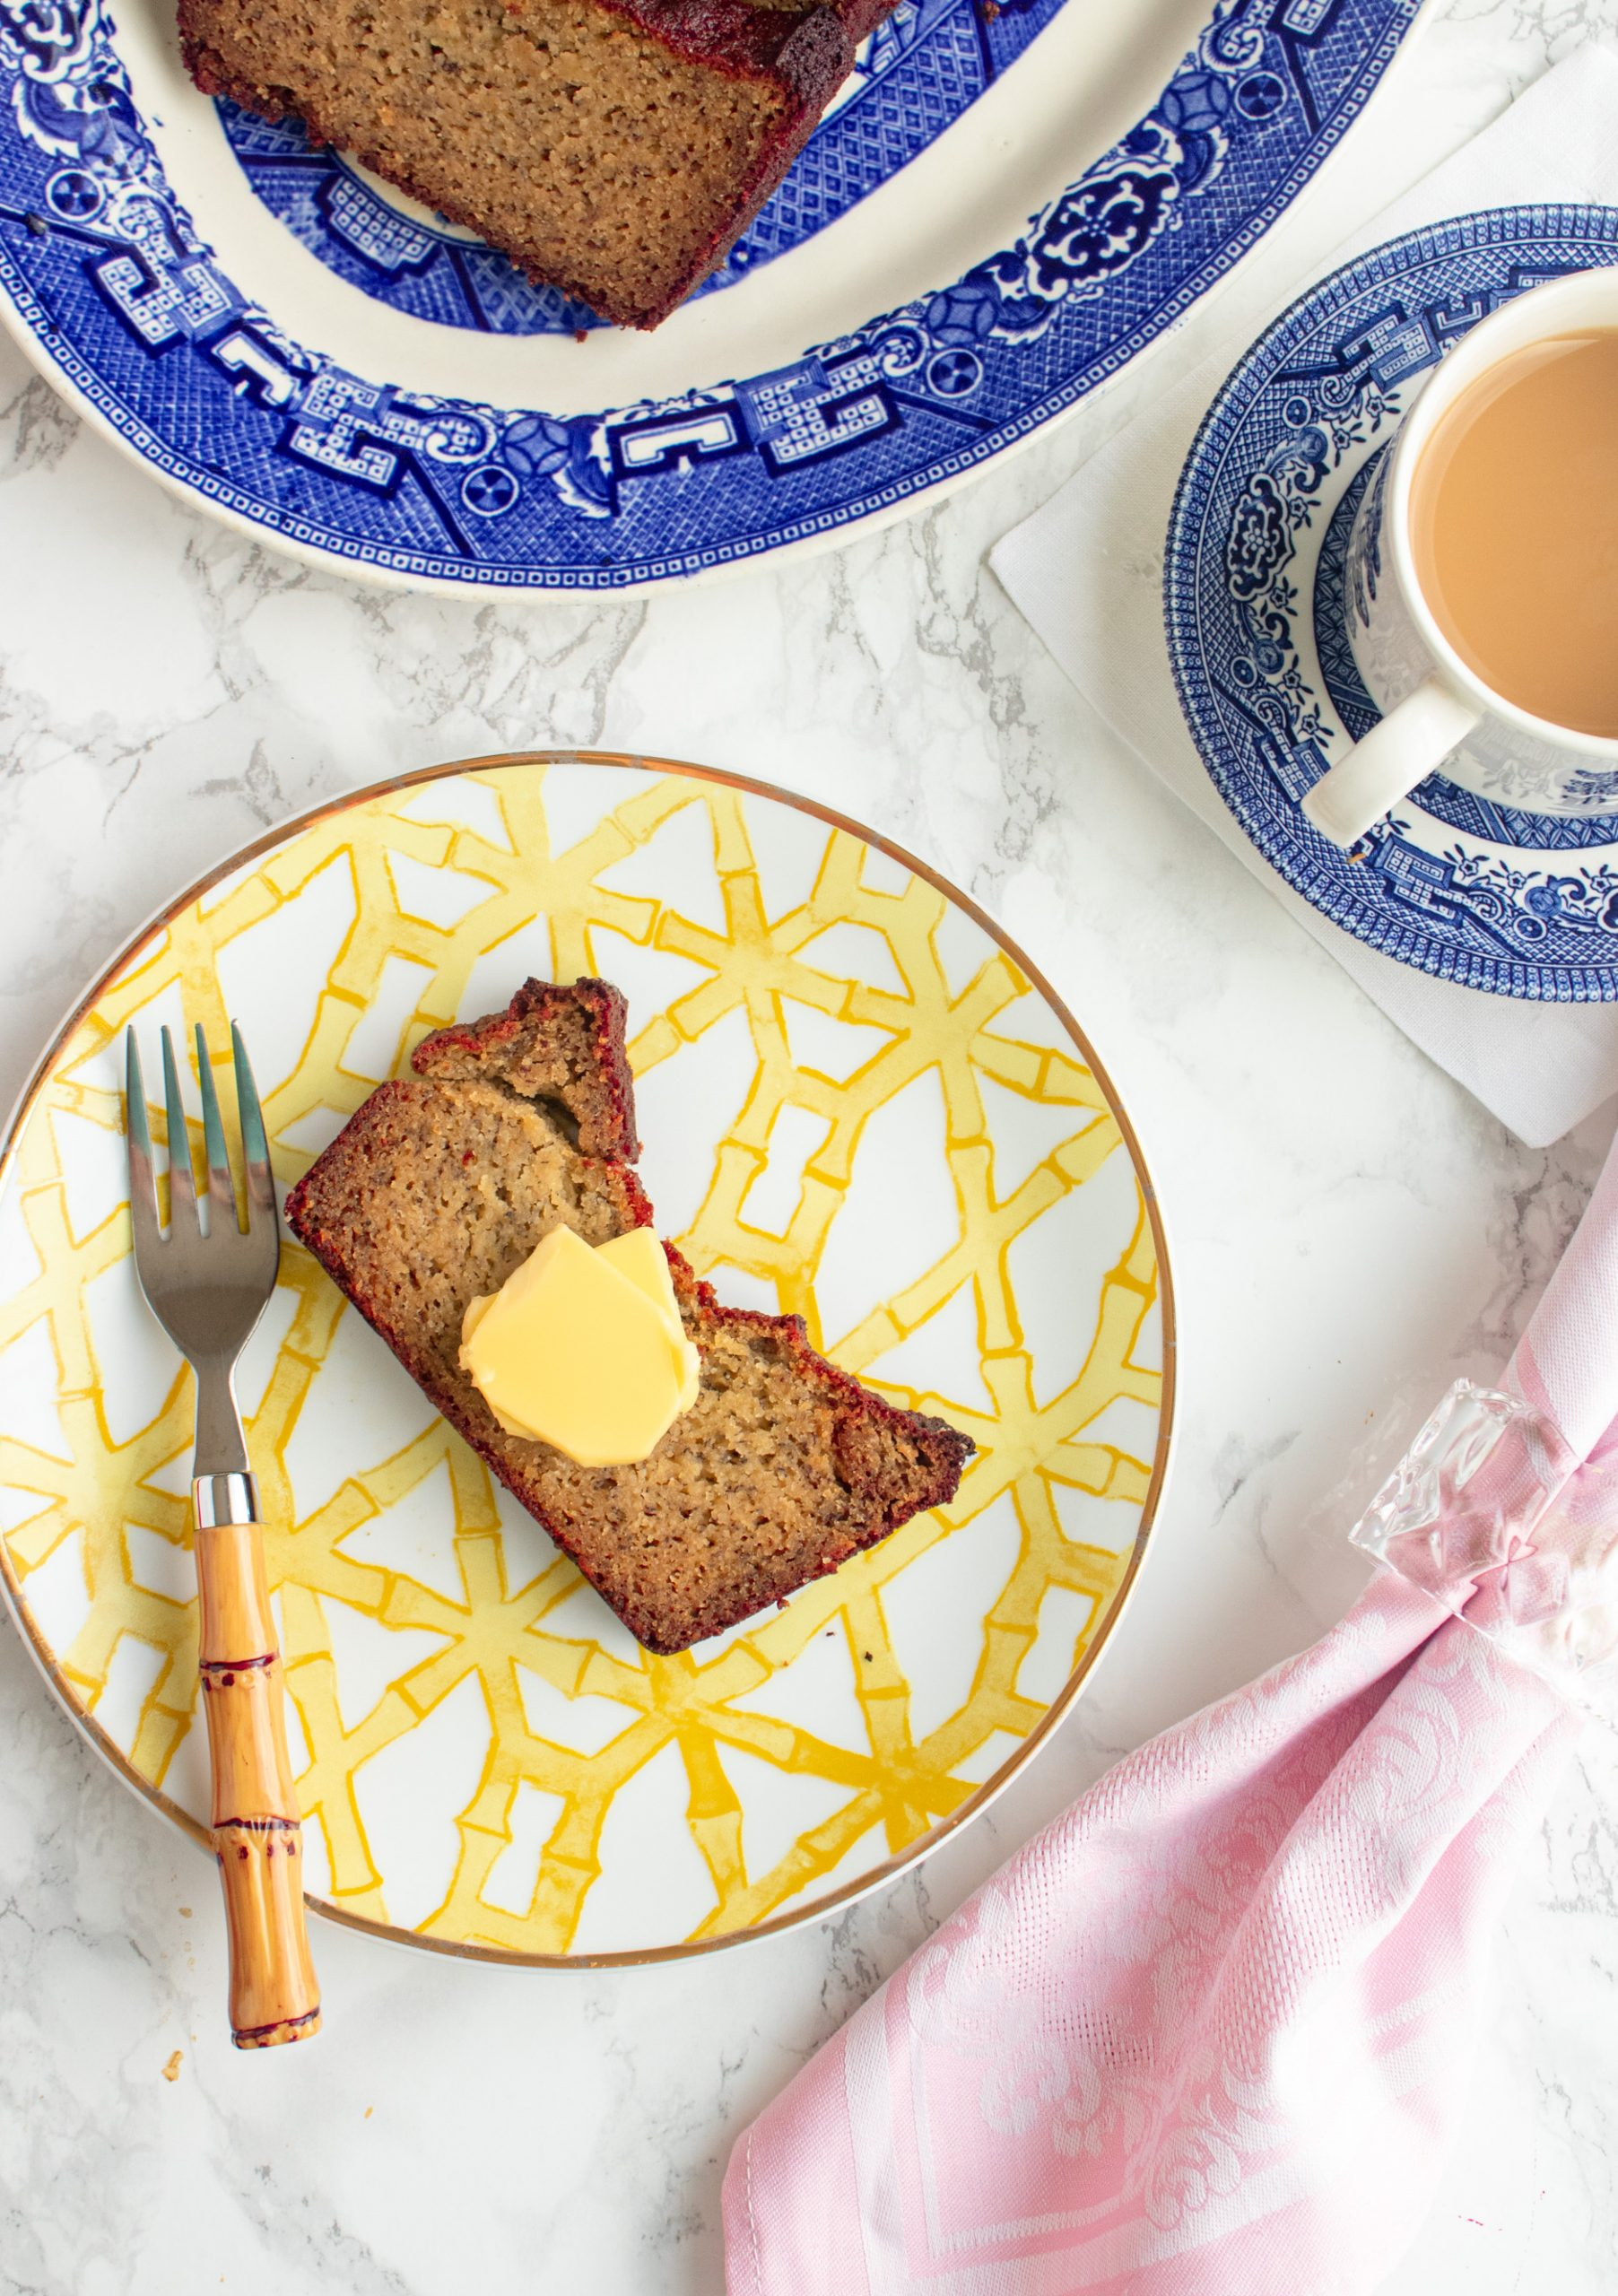 Gluten free banana bread made with real bananas is clean, healthy, and tastes just like the your odl favorite recipe minus the carbs and sugar.